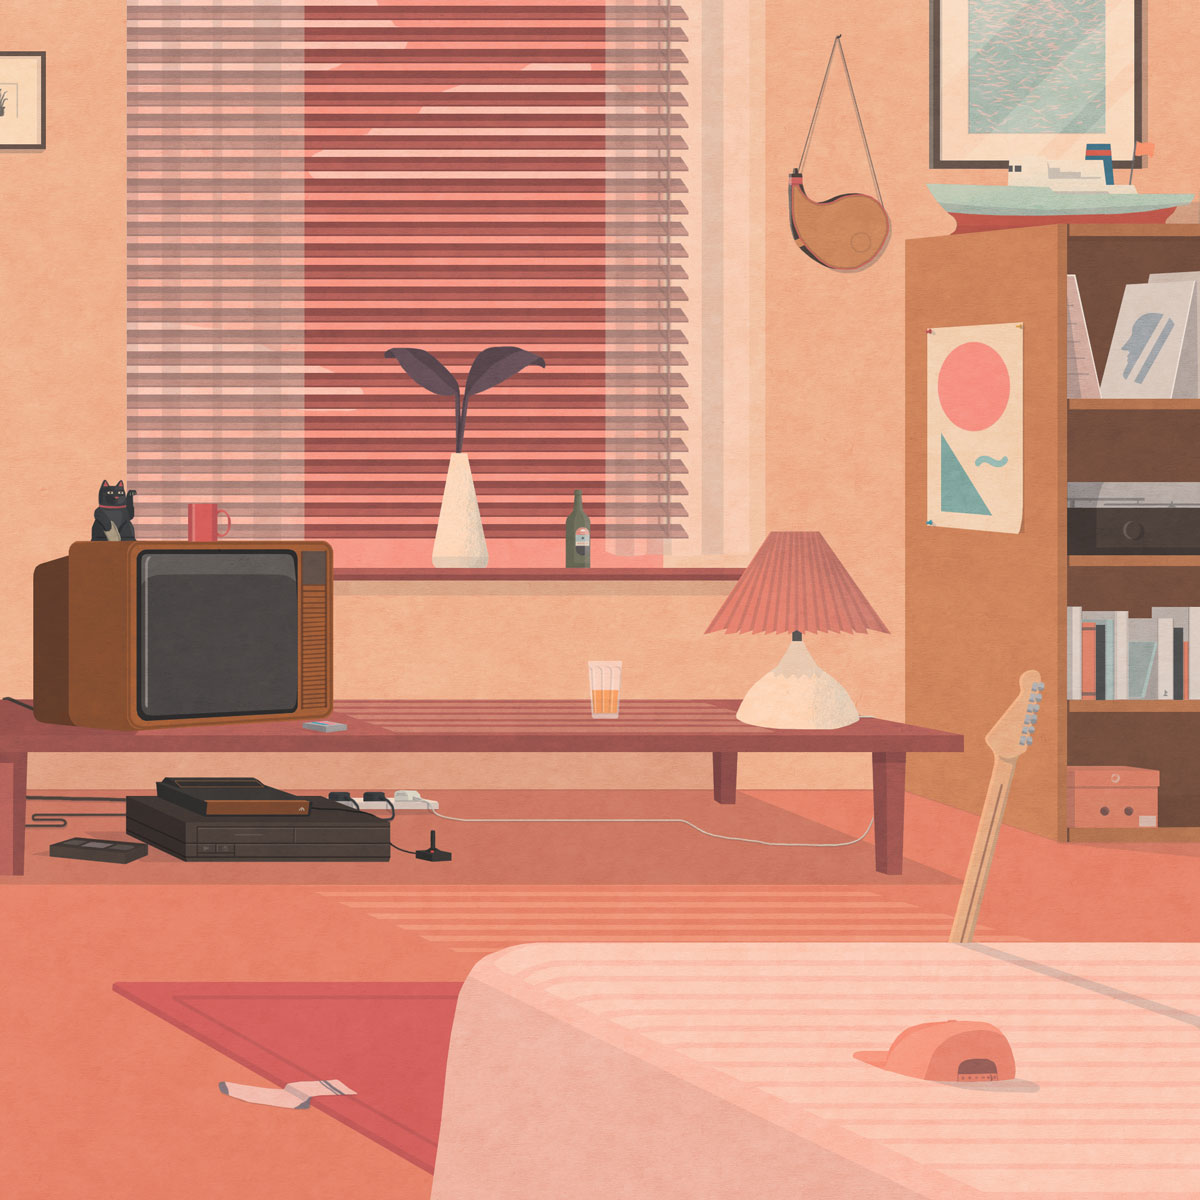 Imaginary Room illustration by Ross Becker